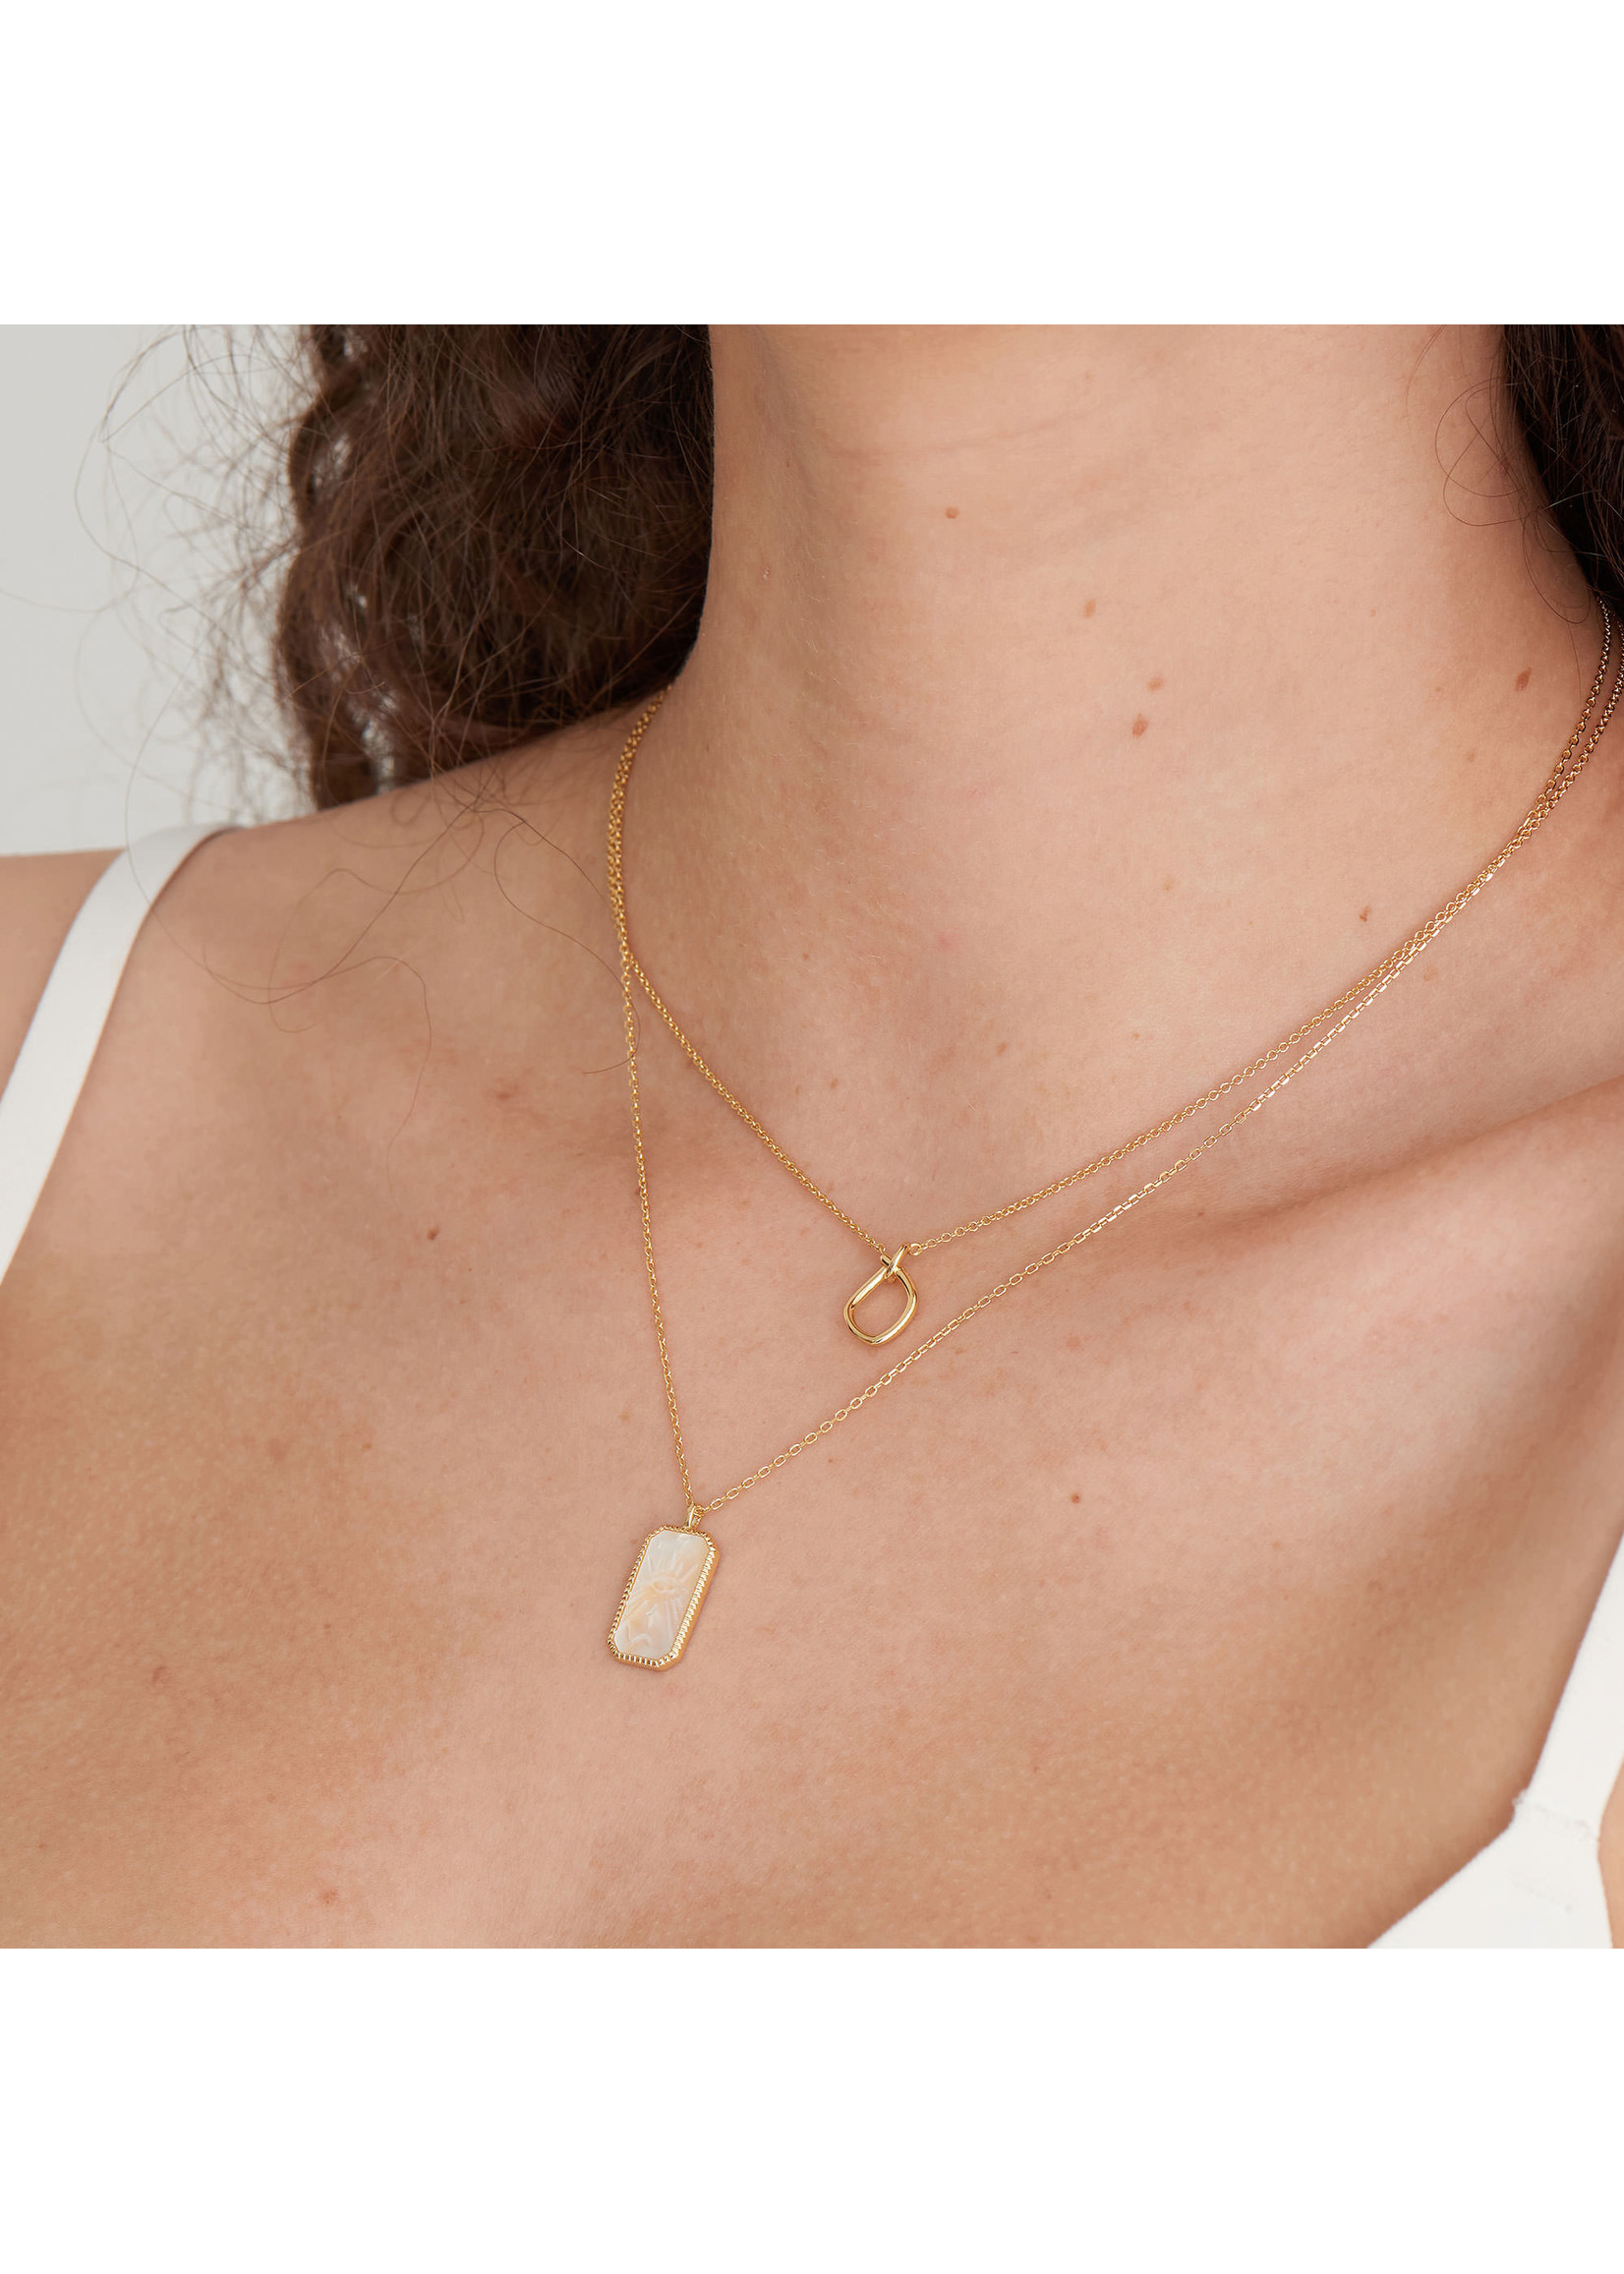 Ania Haie GOLD KNOT PENDANT NECKLACE